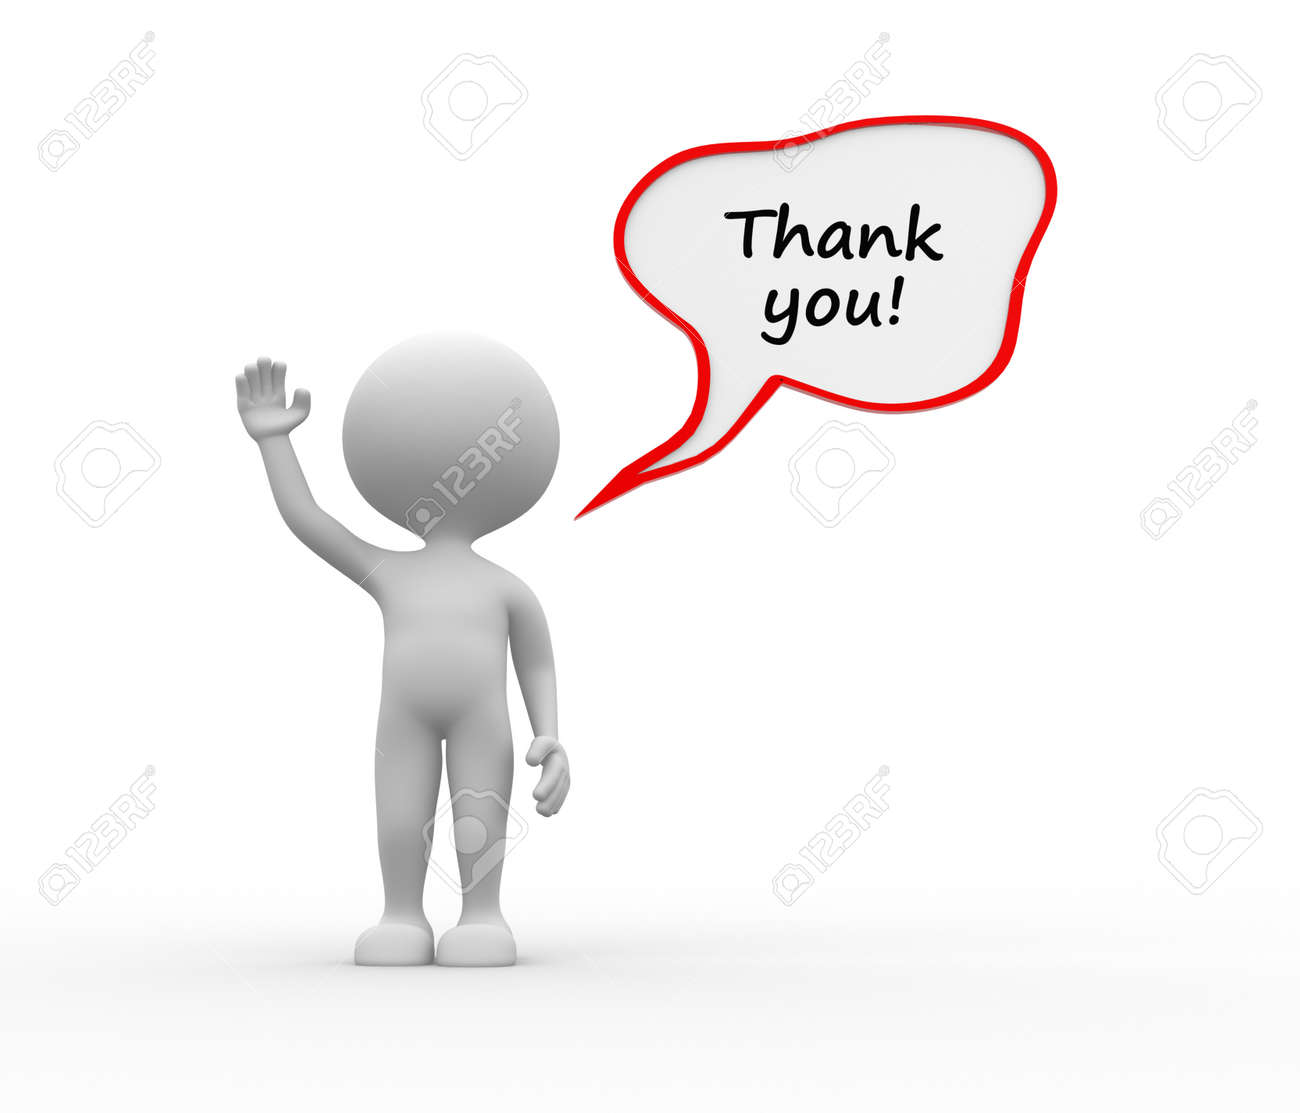 3d people - man, person with dialog bubble and text thank you Stock Photo - 26143168